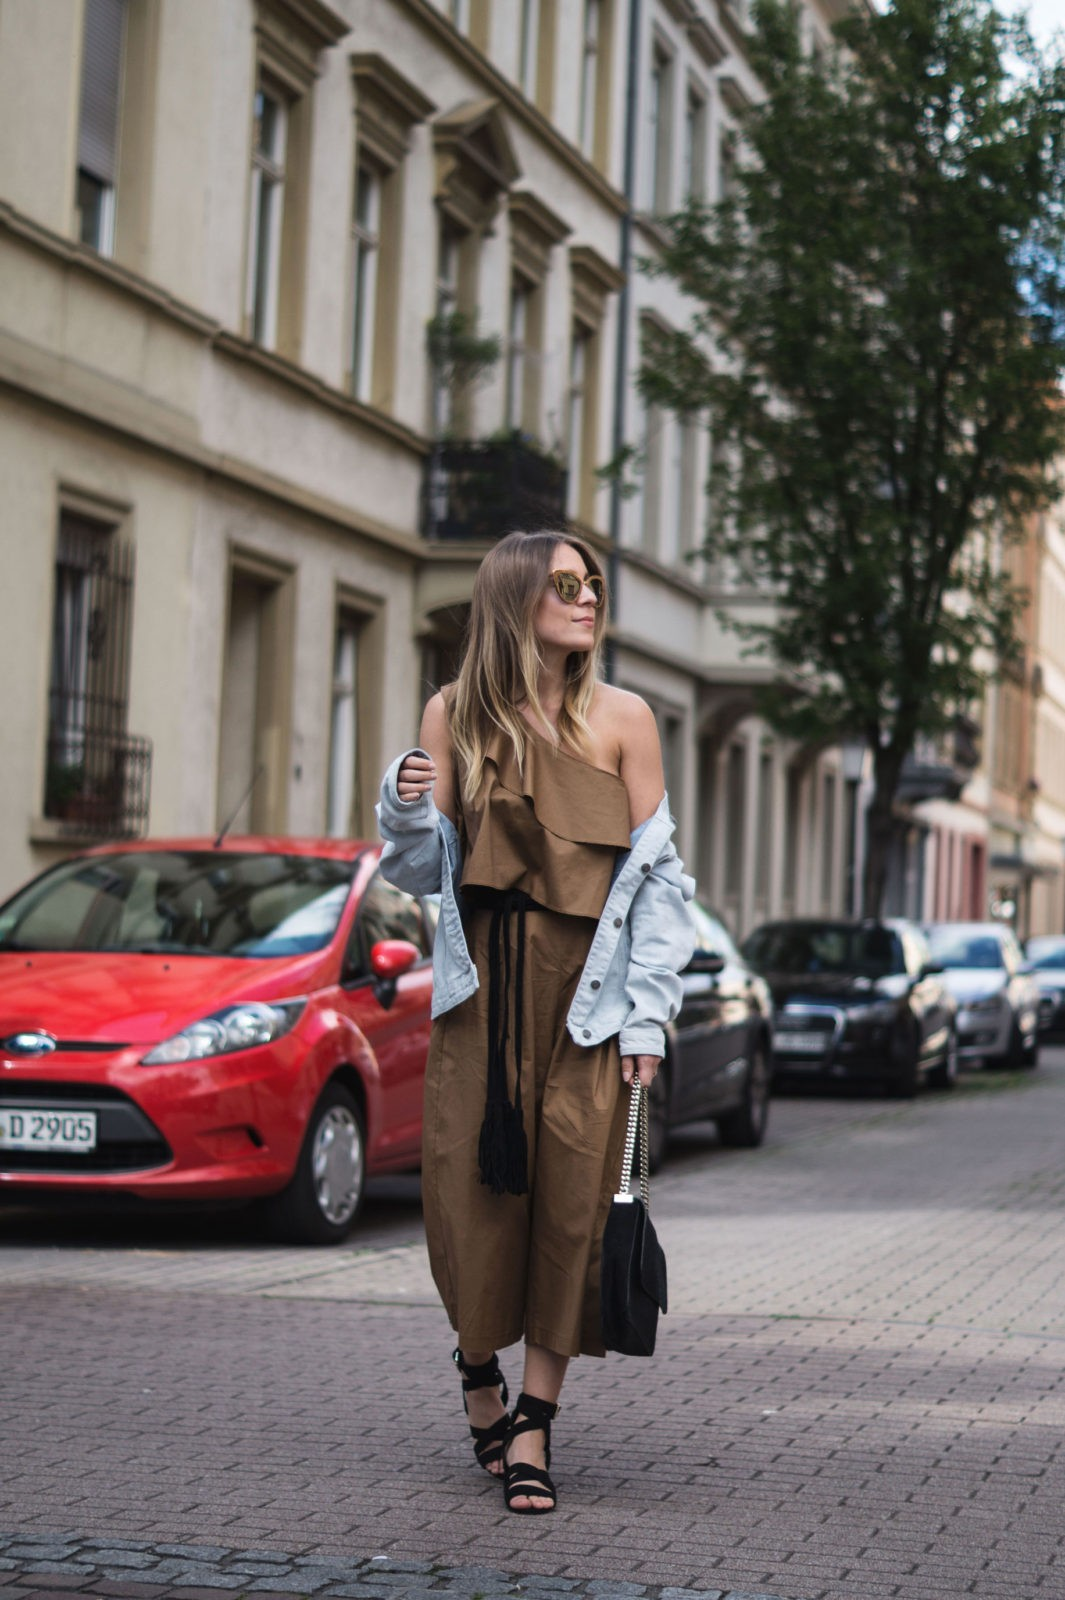 Sariety Modeblog Sarah Czok Fashionblogger Streetstyle Outfit Jumpsuit Obersize Denim Jeansjacke-4